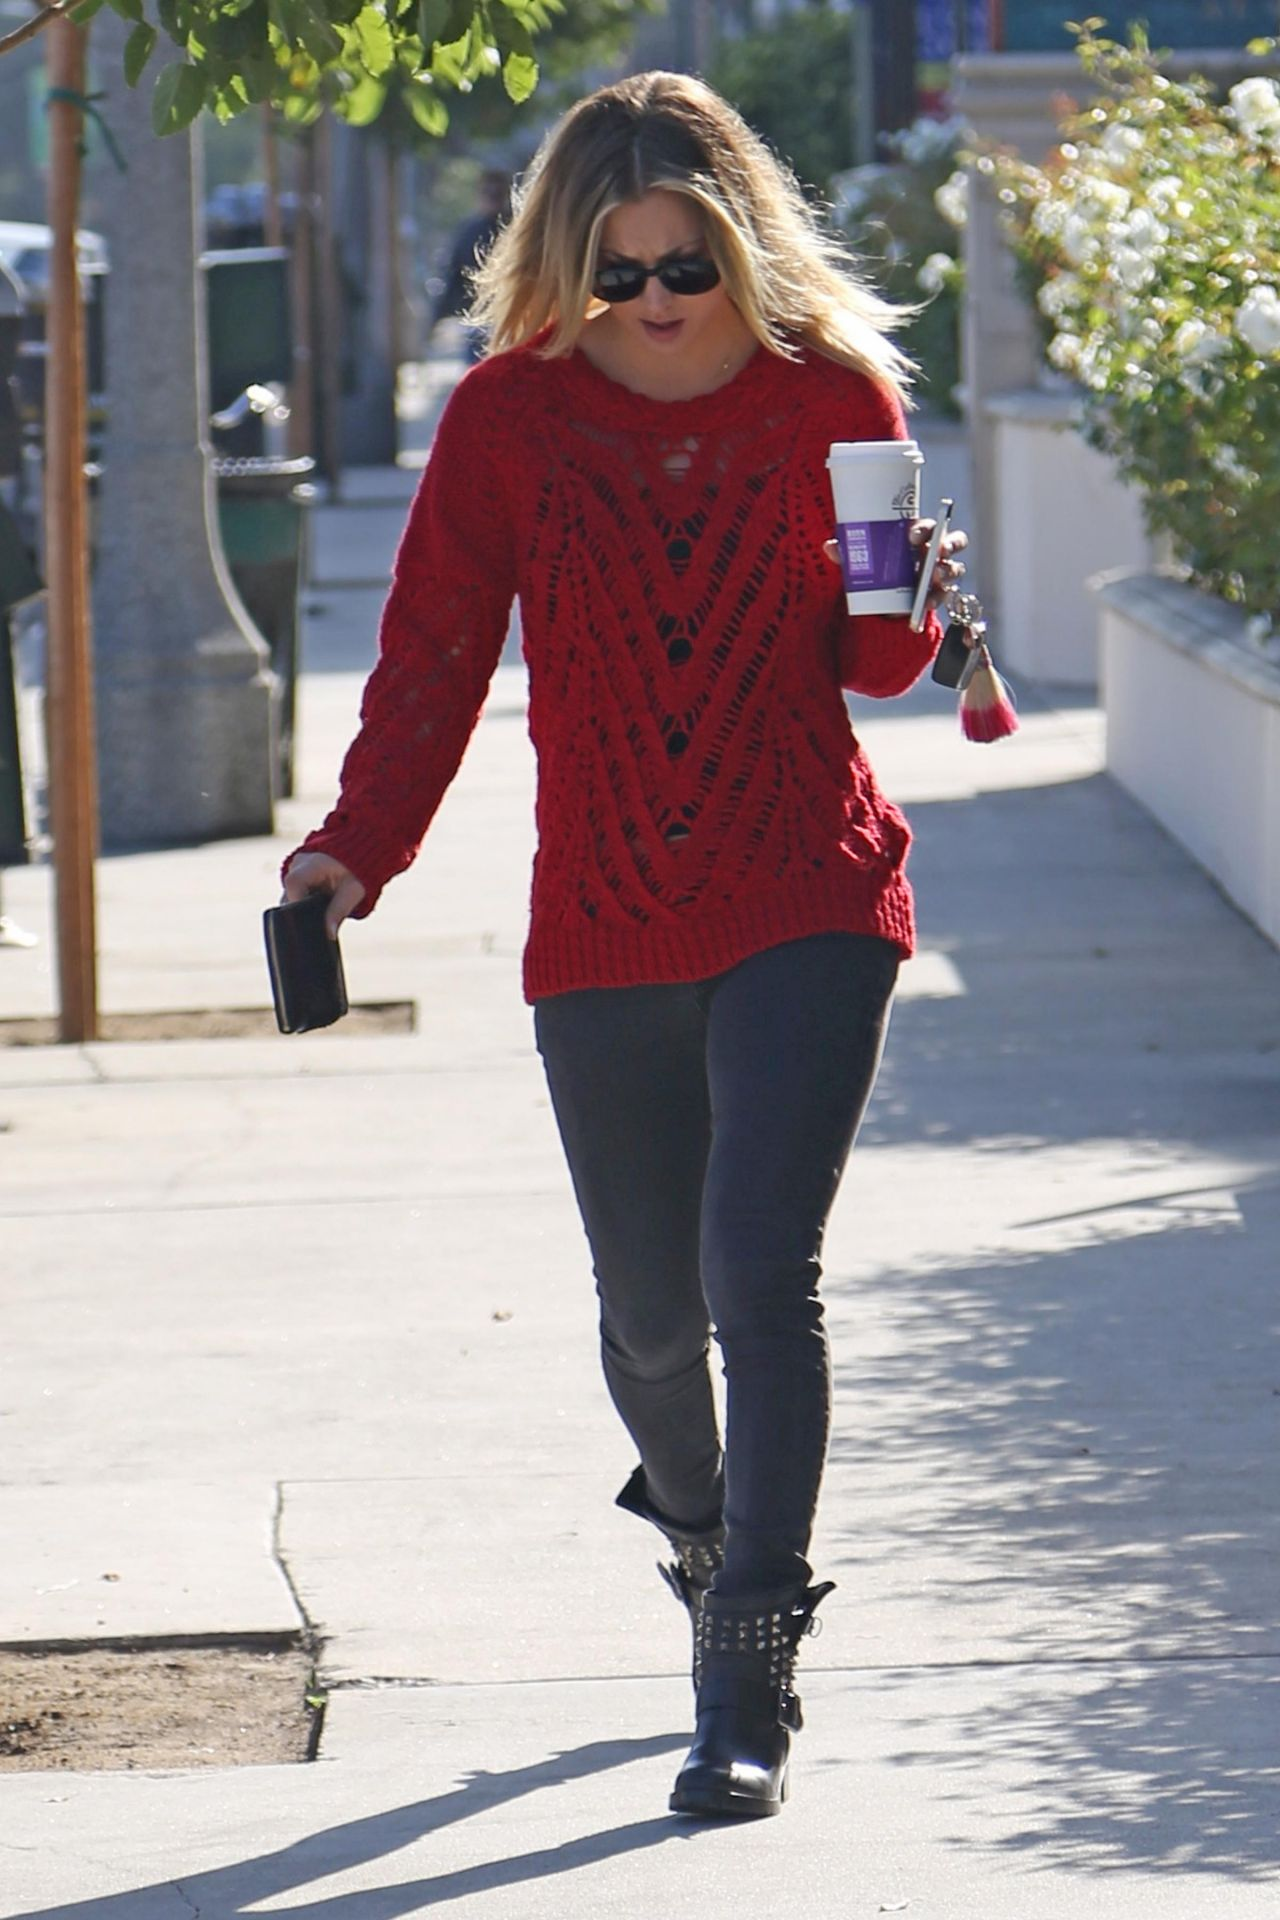 Kaley Cuoco Street Style In A Red Sweater